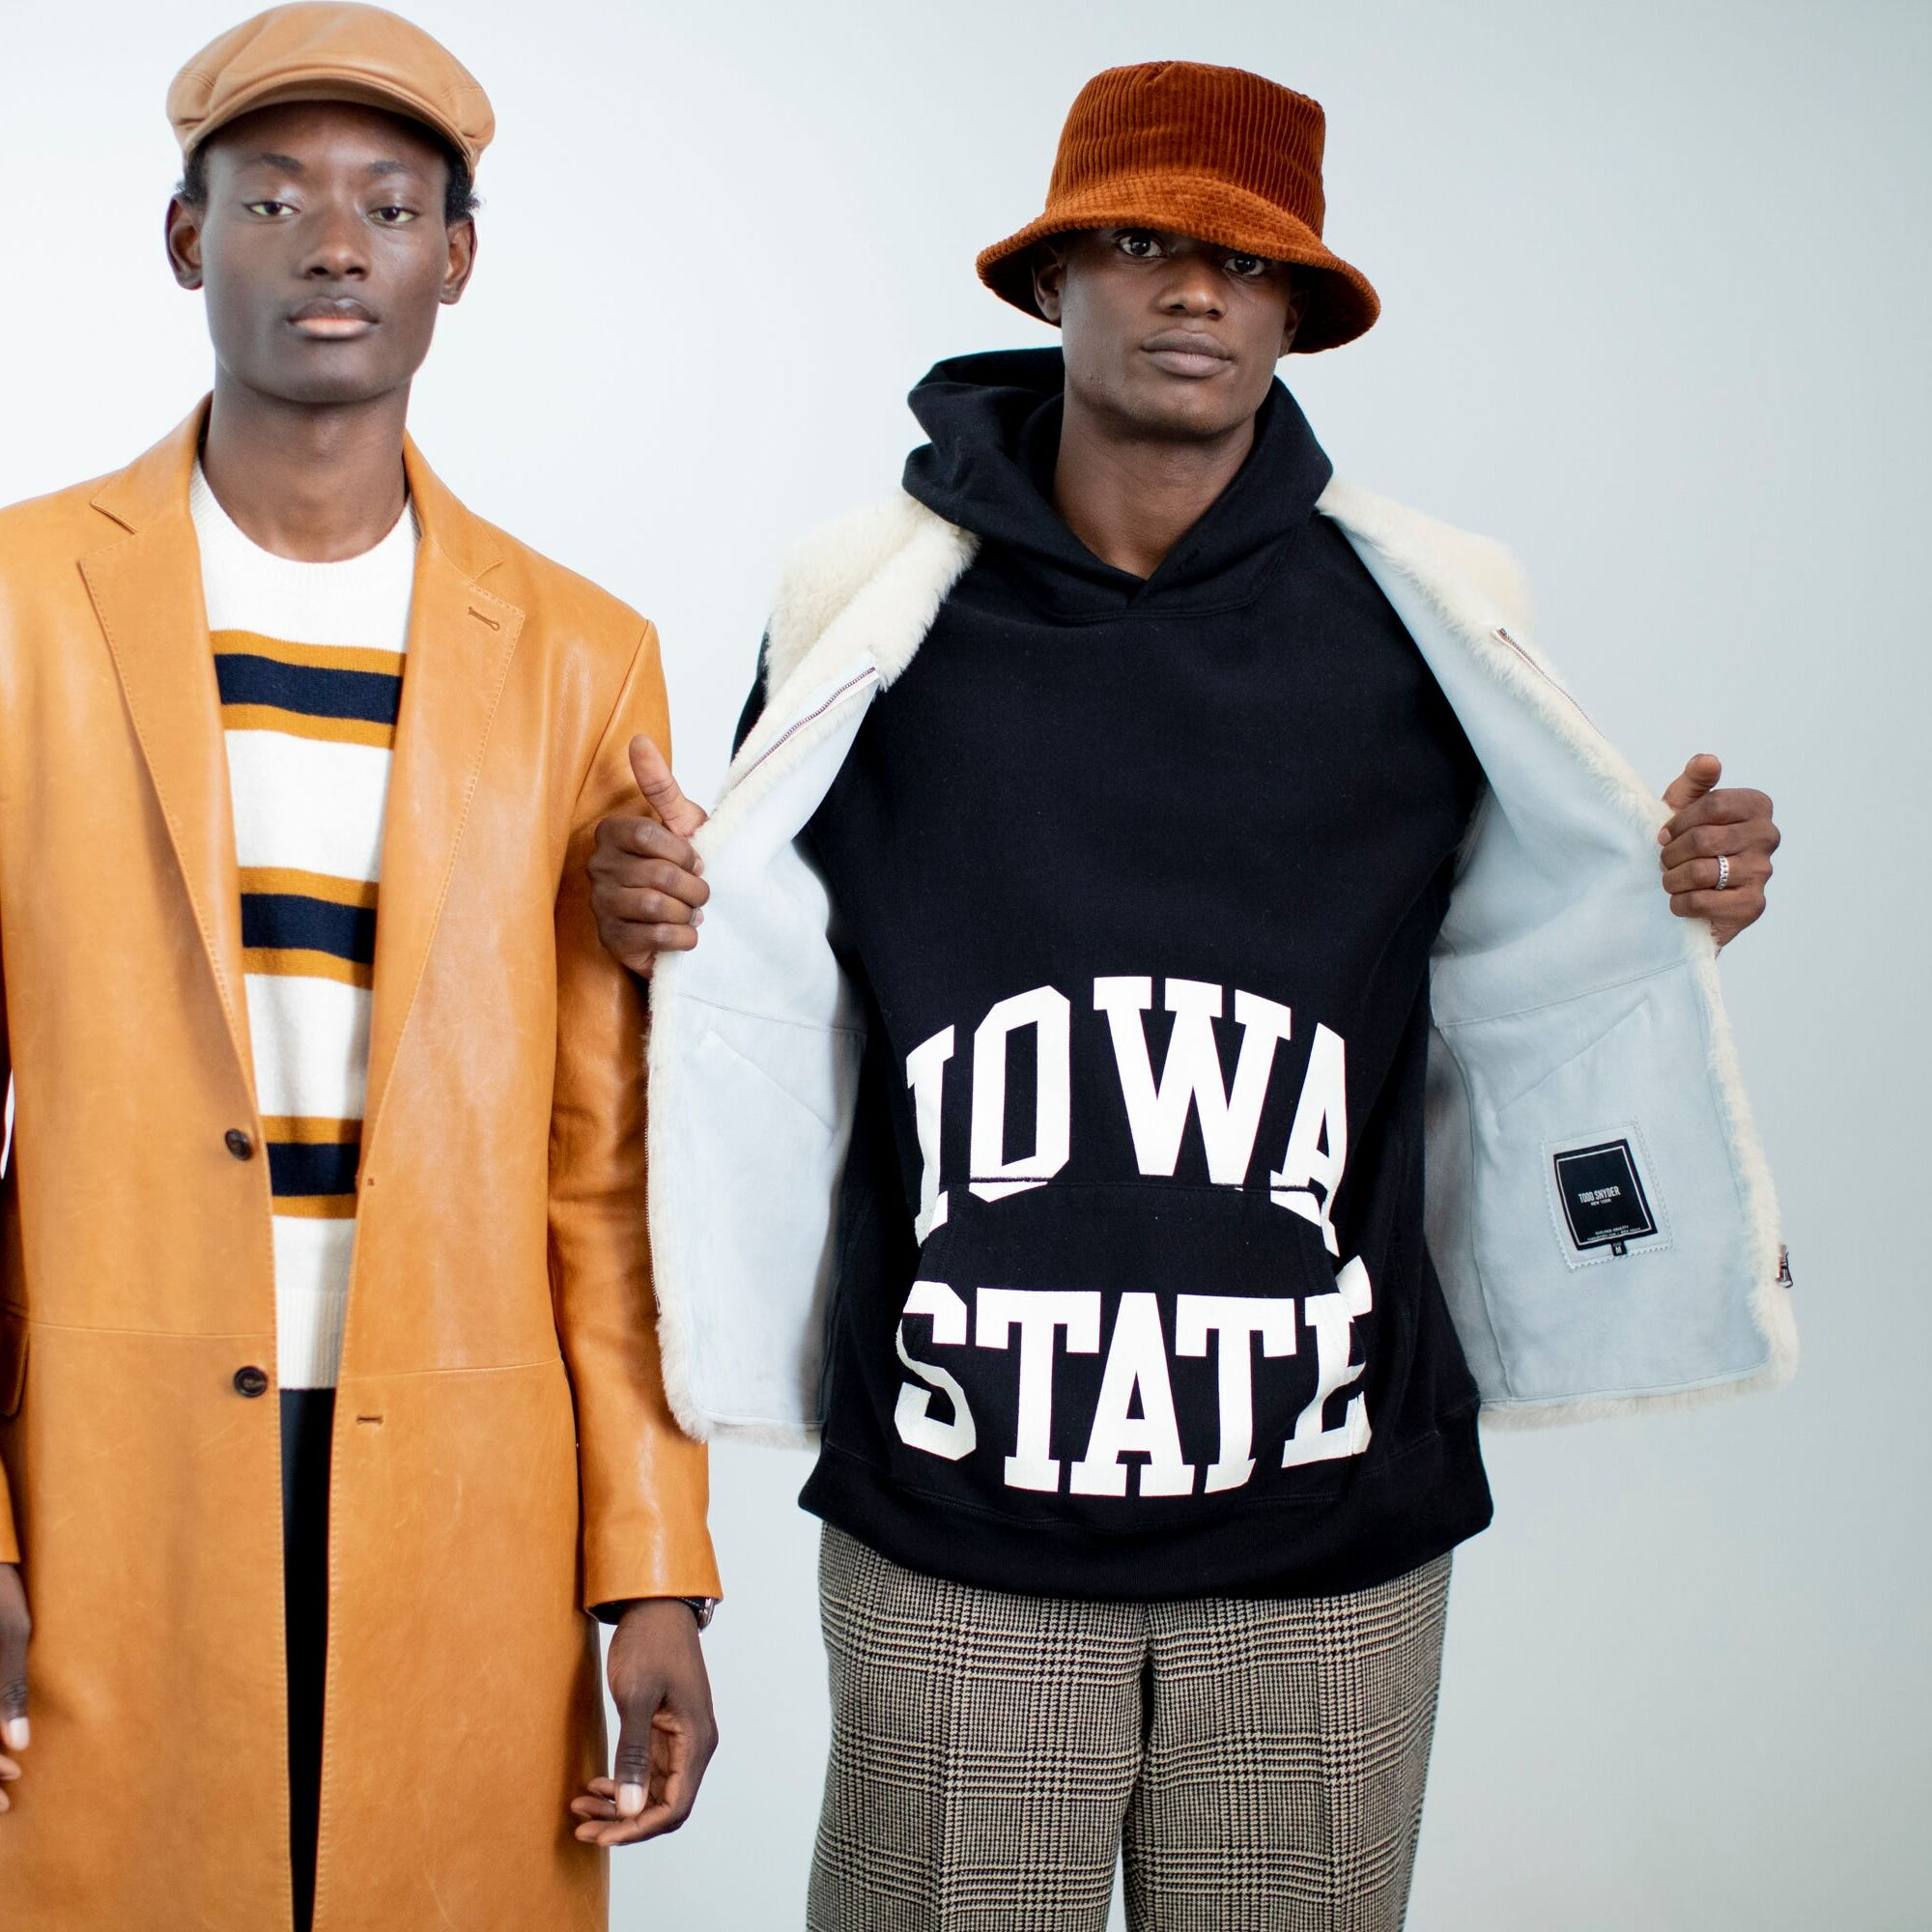 Now showing atNew York Fashion Week: Iowa State hoodies and bacon-wrapped tater tots